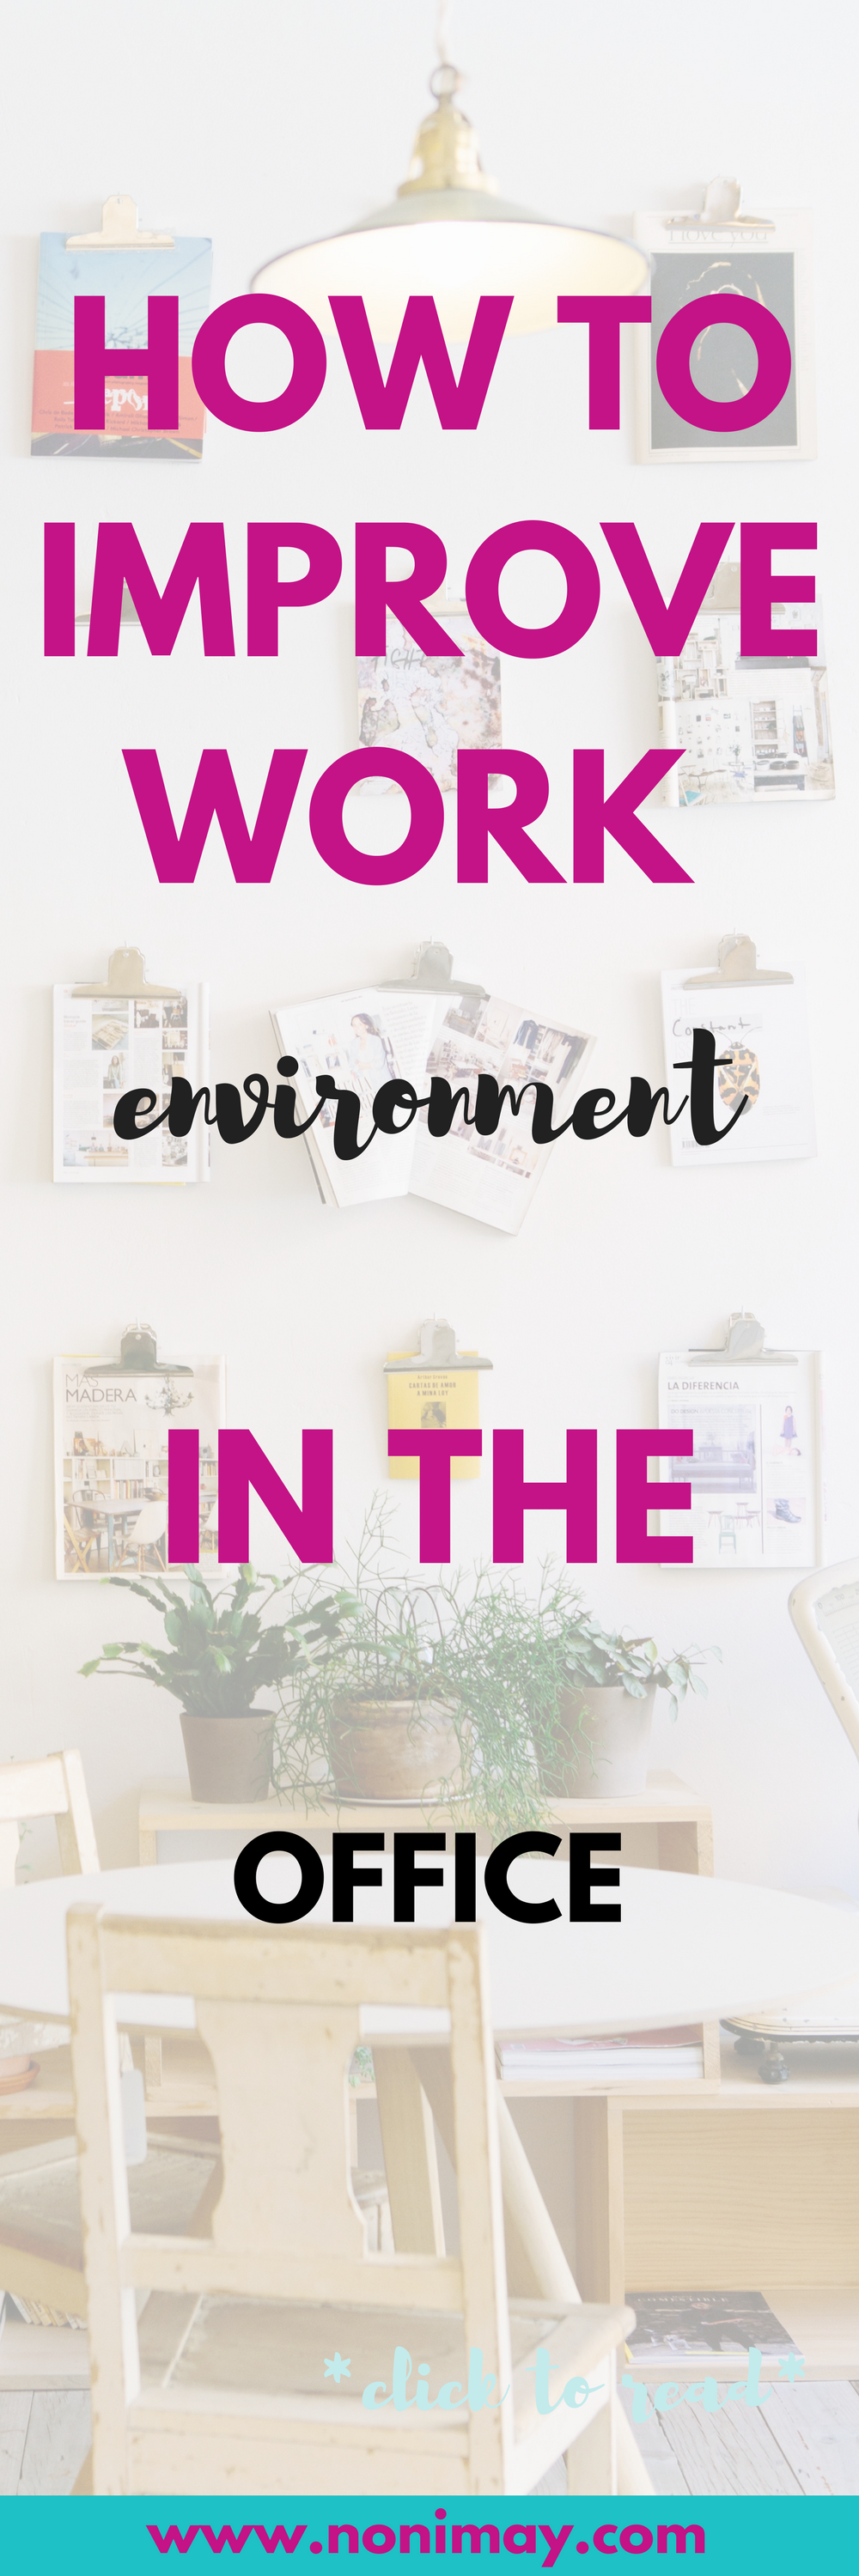 how to improve work environment in the office